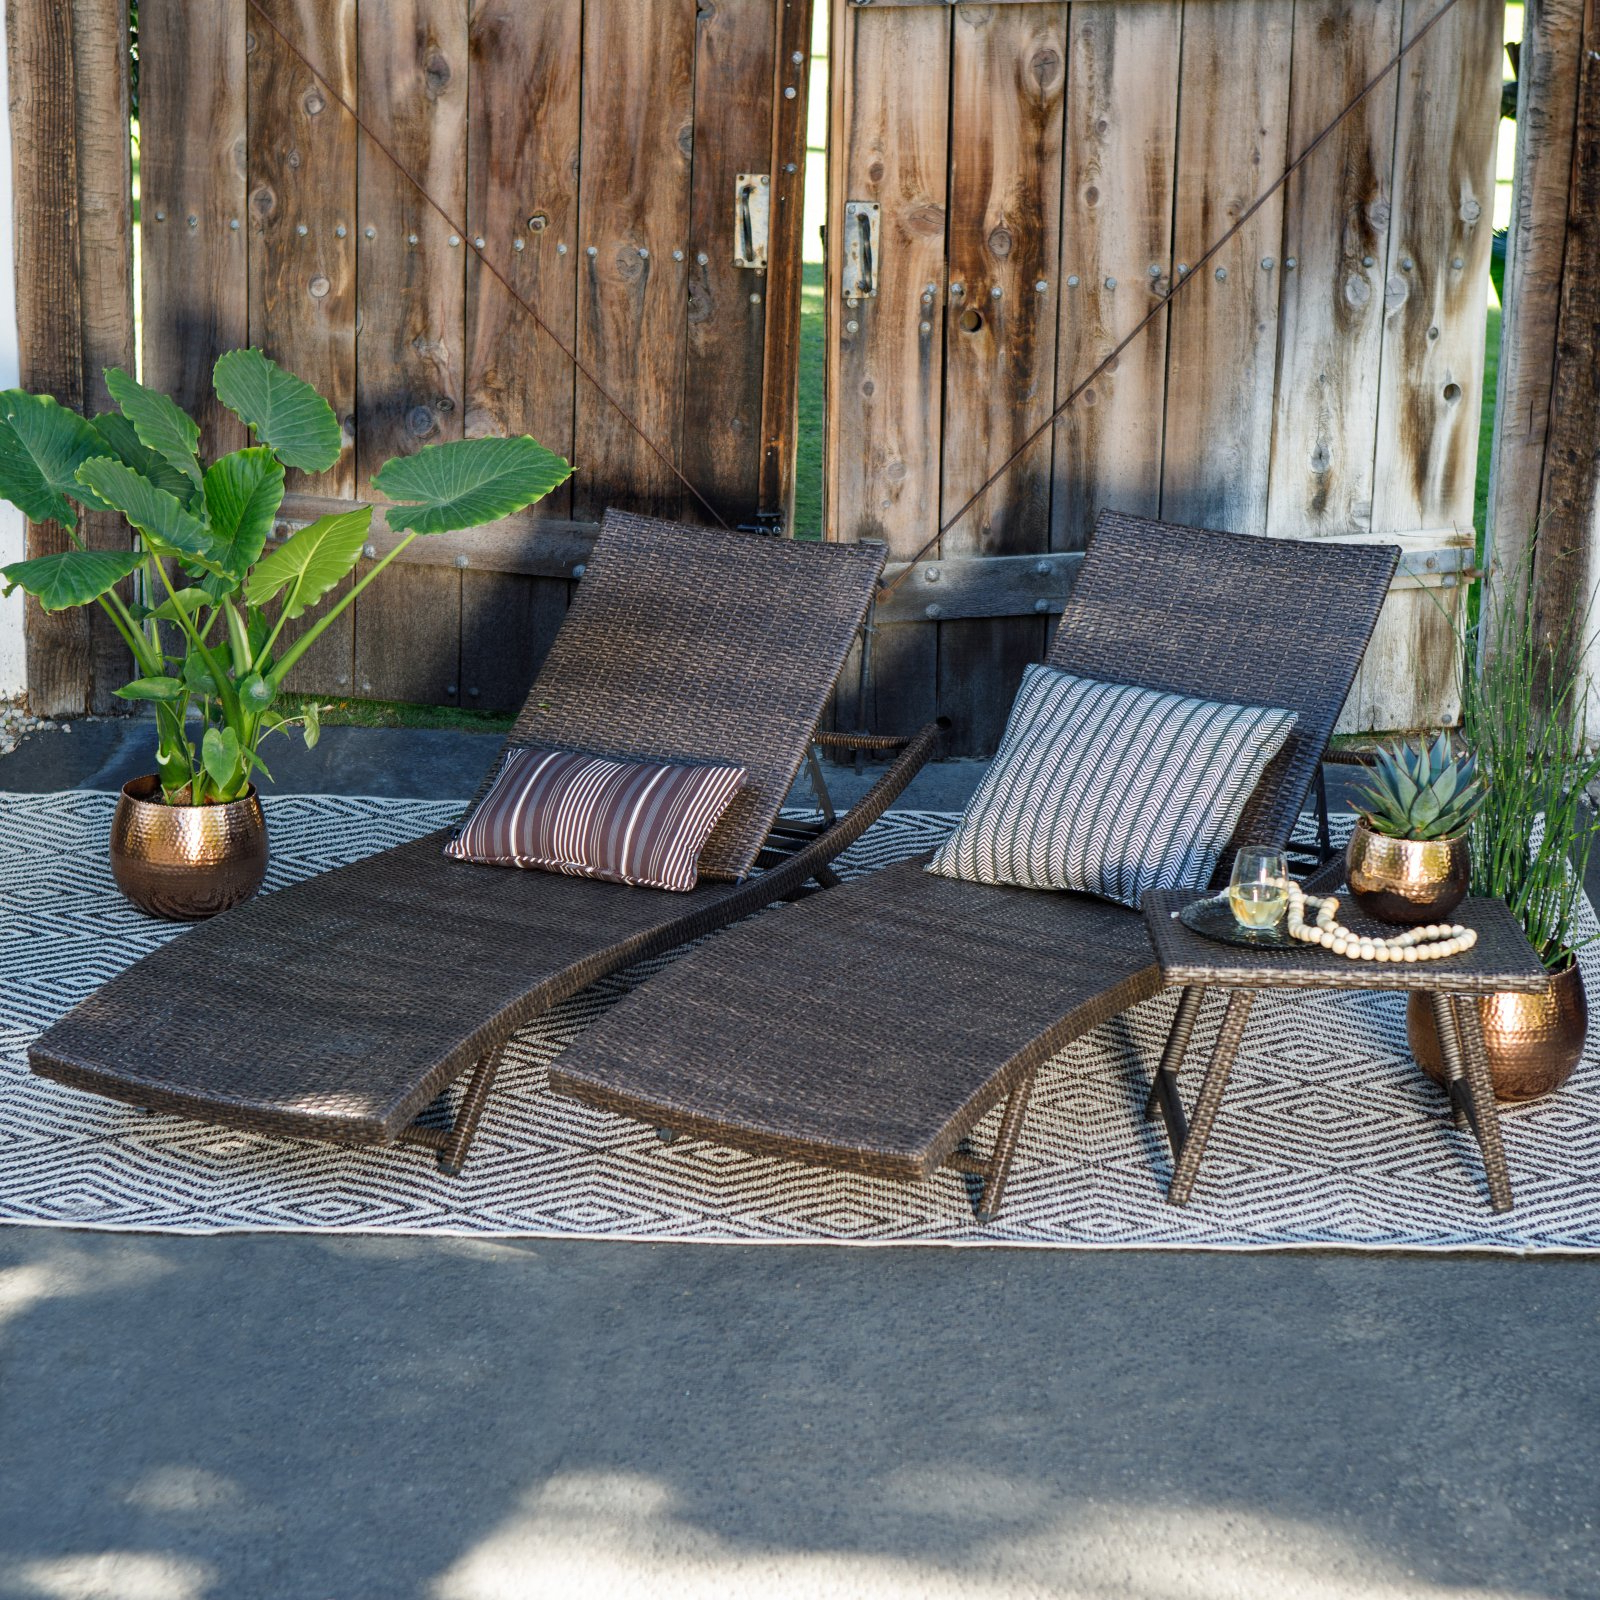 Preferred Outdoor 3 Piece Wicker Chaise Lounges And Table Sets Within Coral Coast Ashley All Weather Wicker 3 Piece Chaise Lounge Set With Table – Walmart (View 19 of 25)